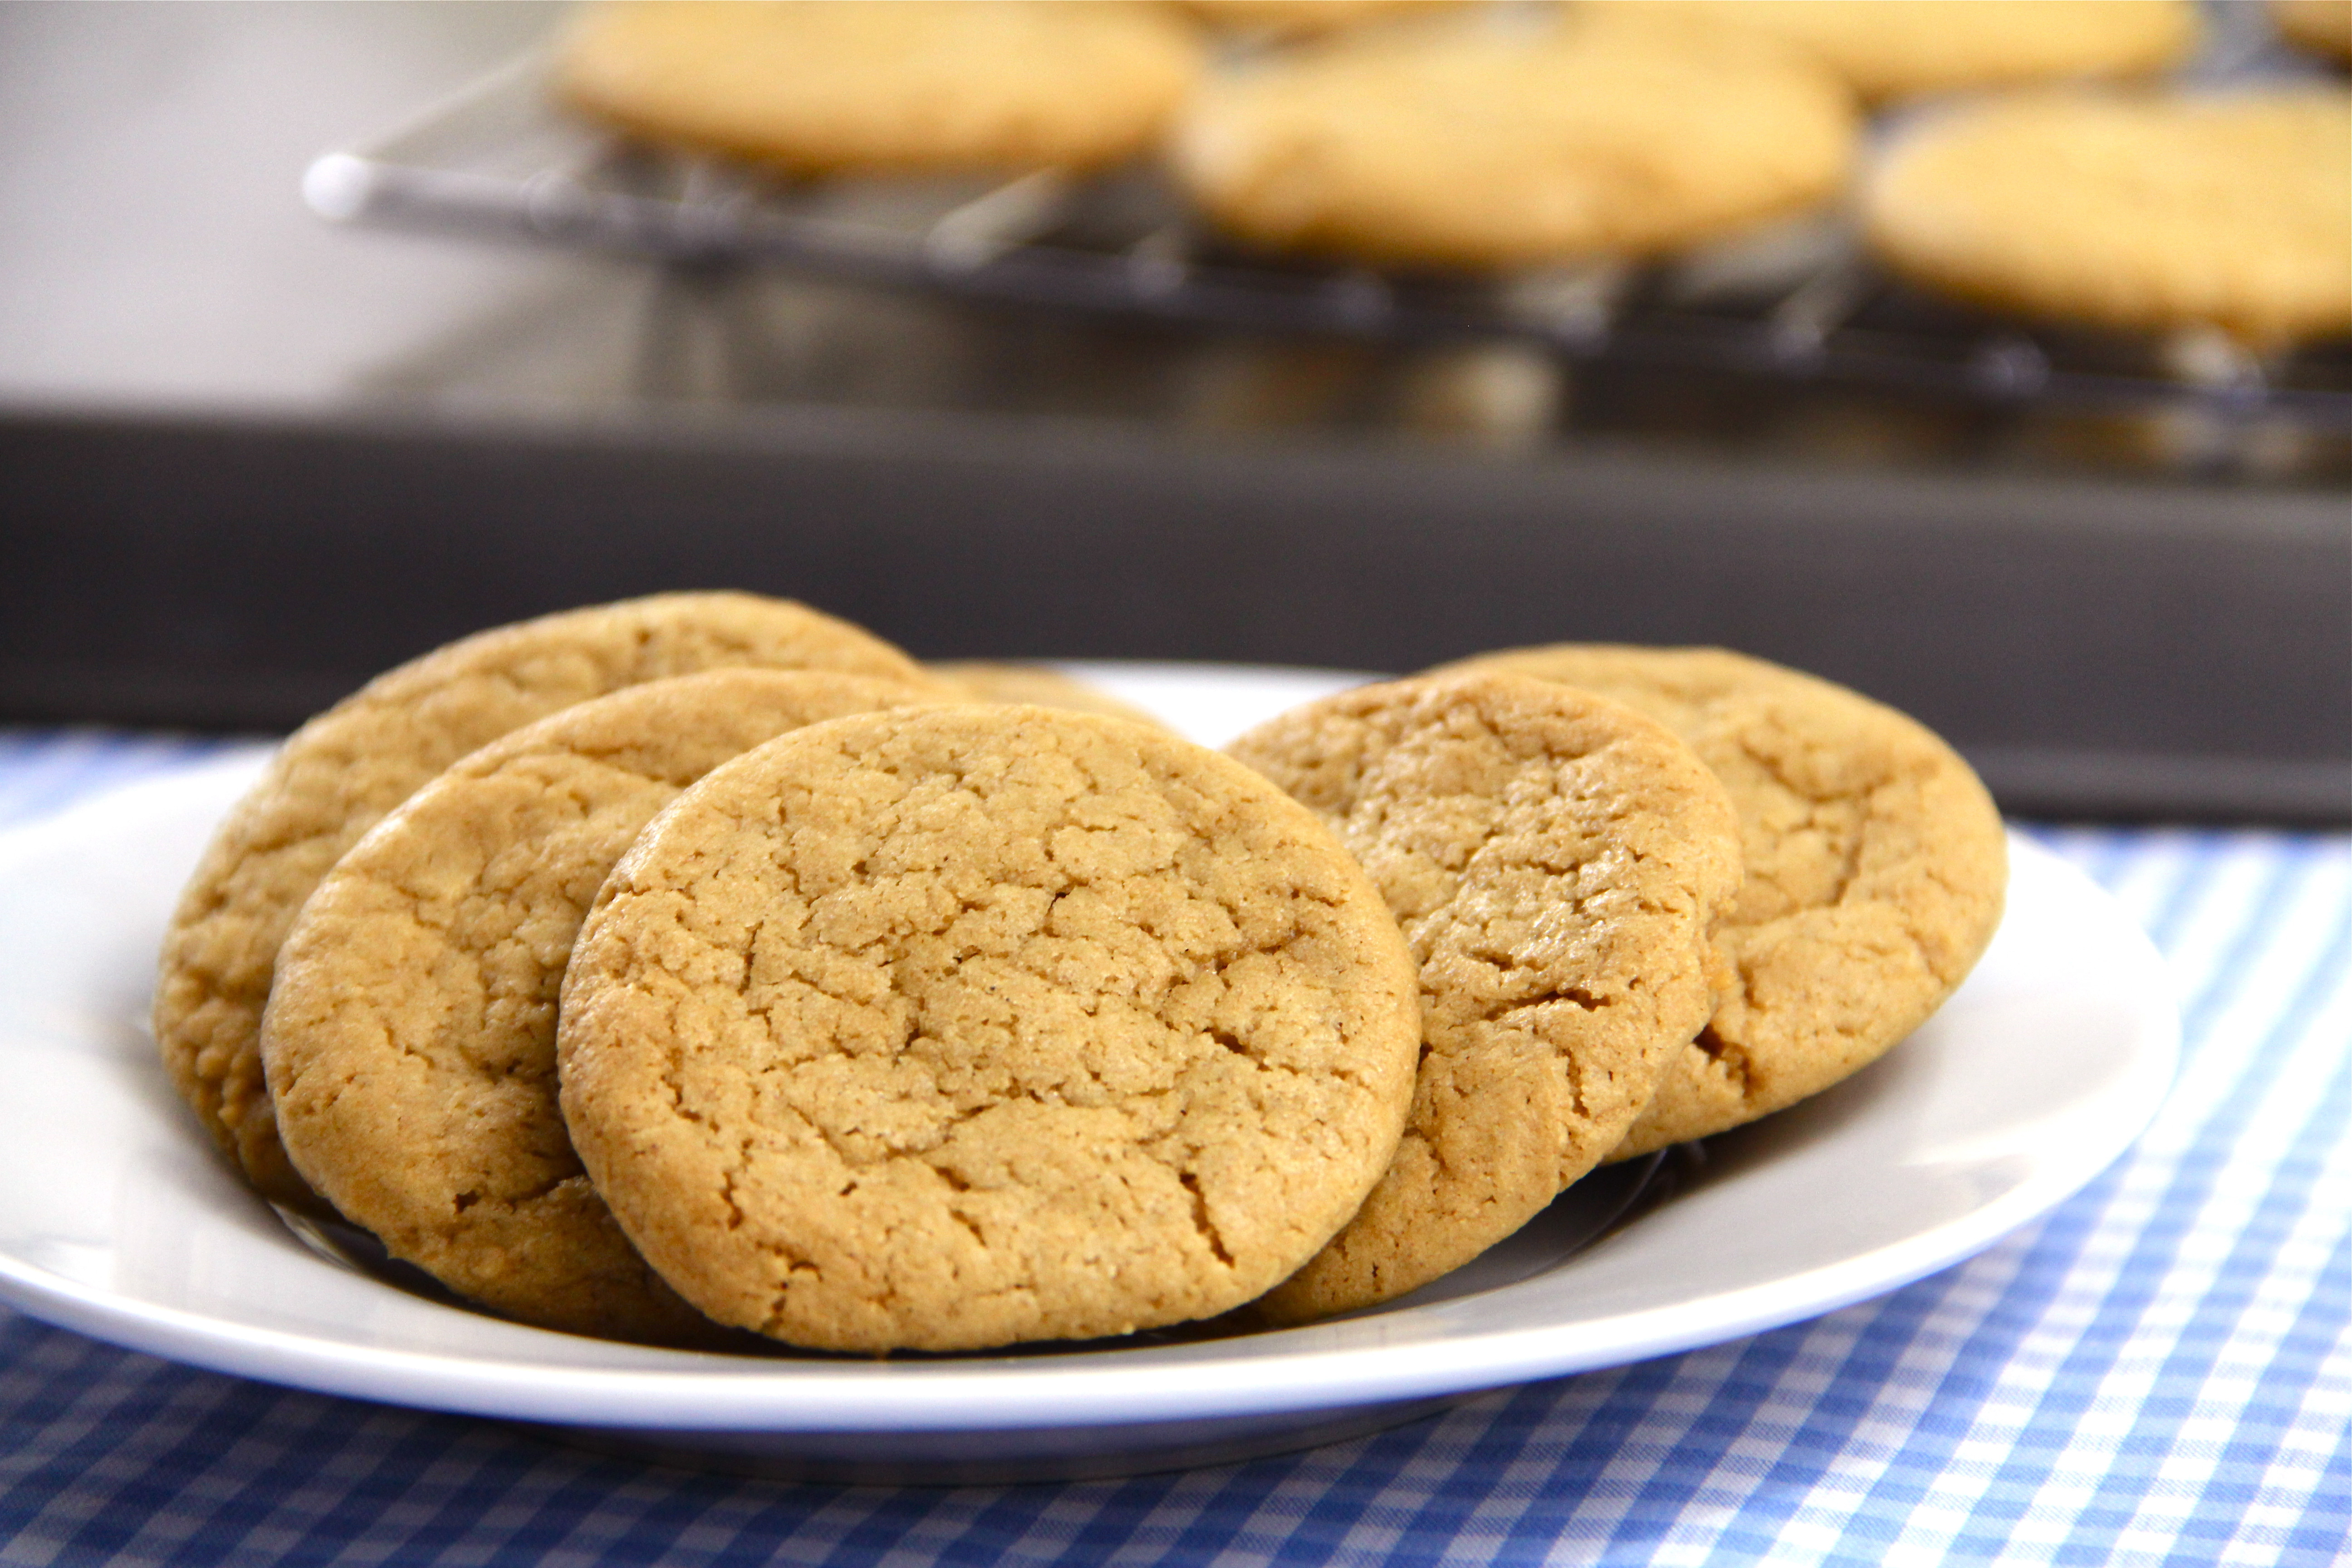 Healthy Gluten Free Cookie Recipes  Gluten free and Dairy Free Peanut Butter Cookies